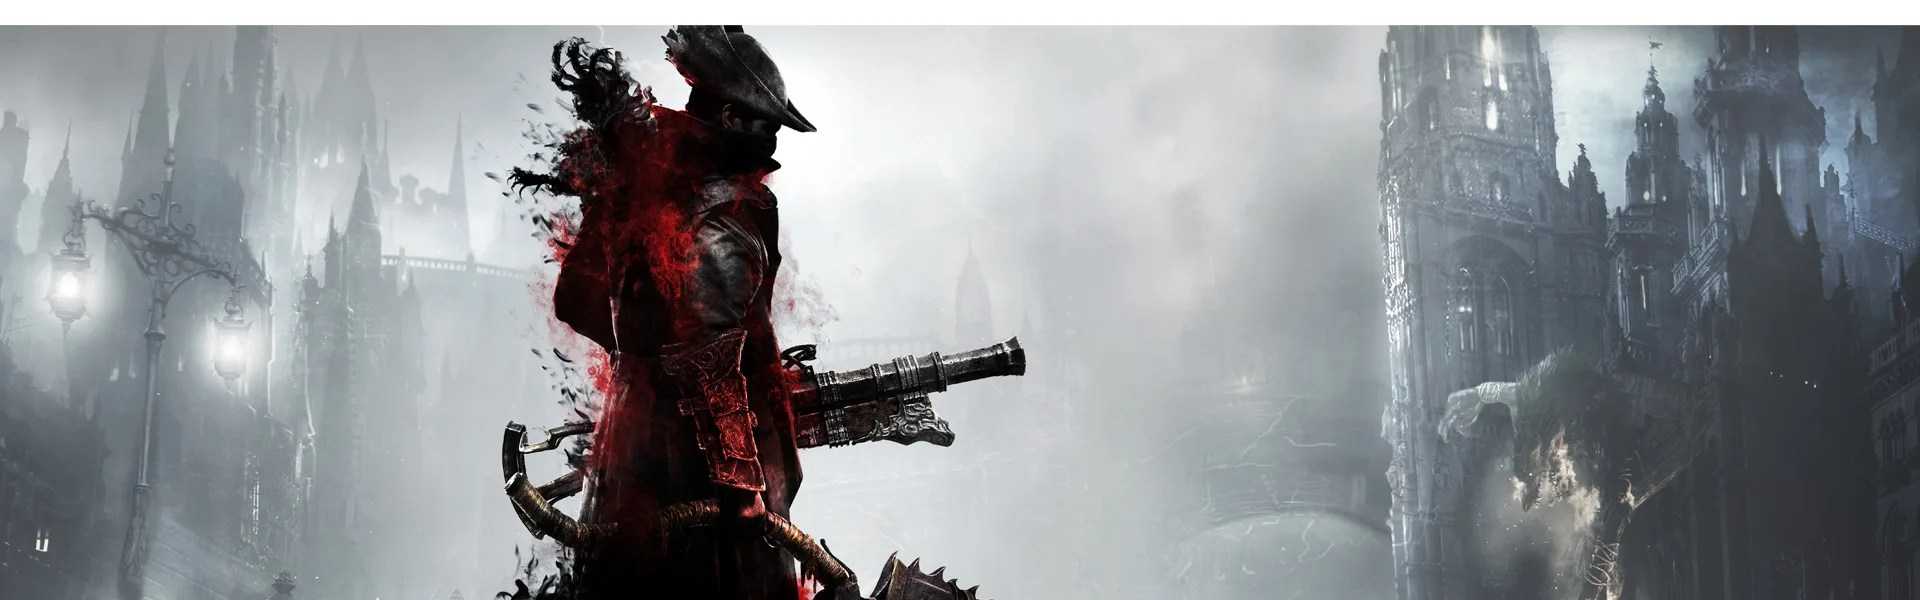 Bloodborne Game of the Year Edition launches on 27th November – PlayStation.Blog